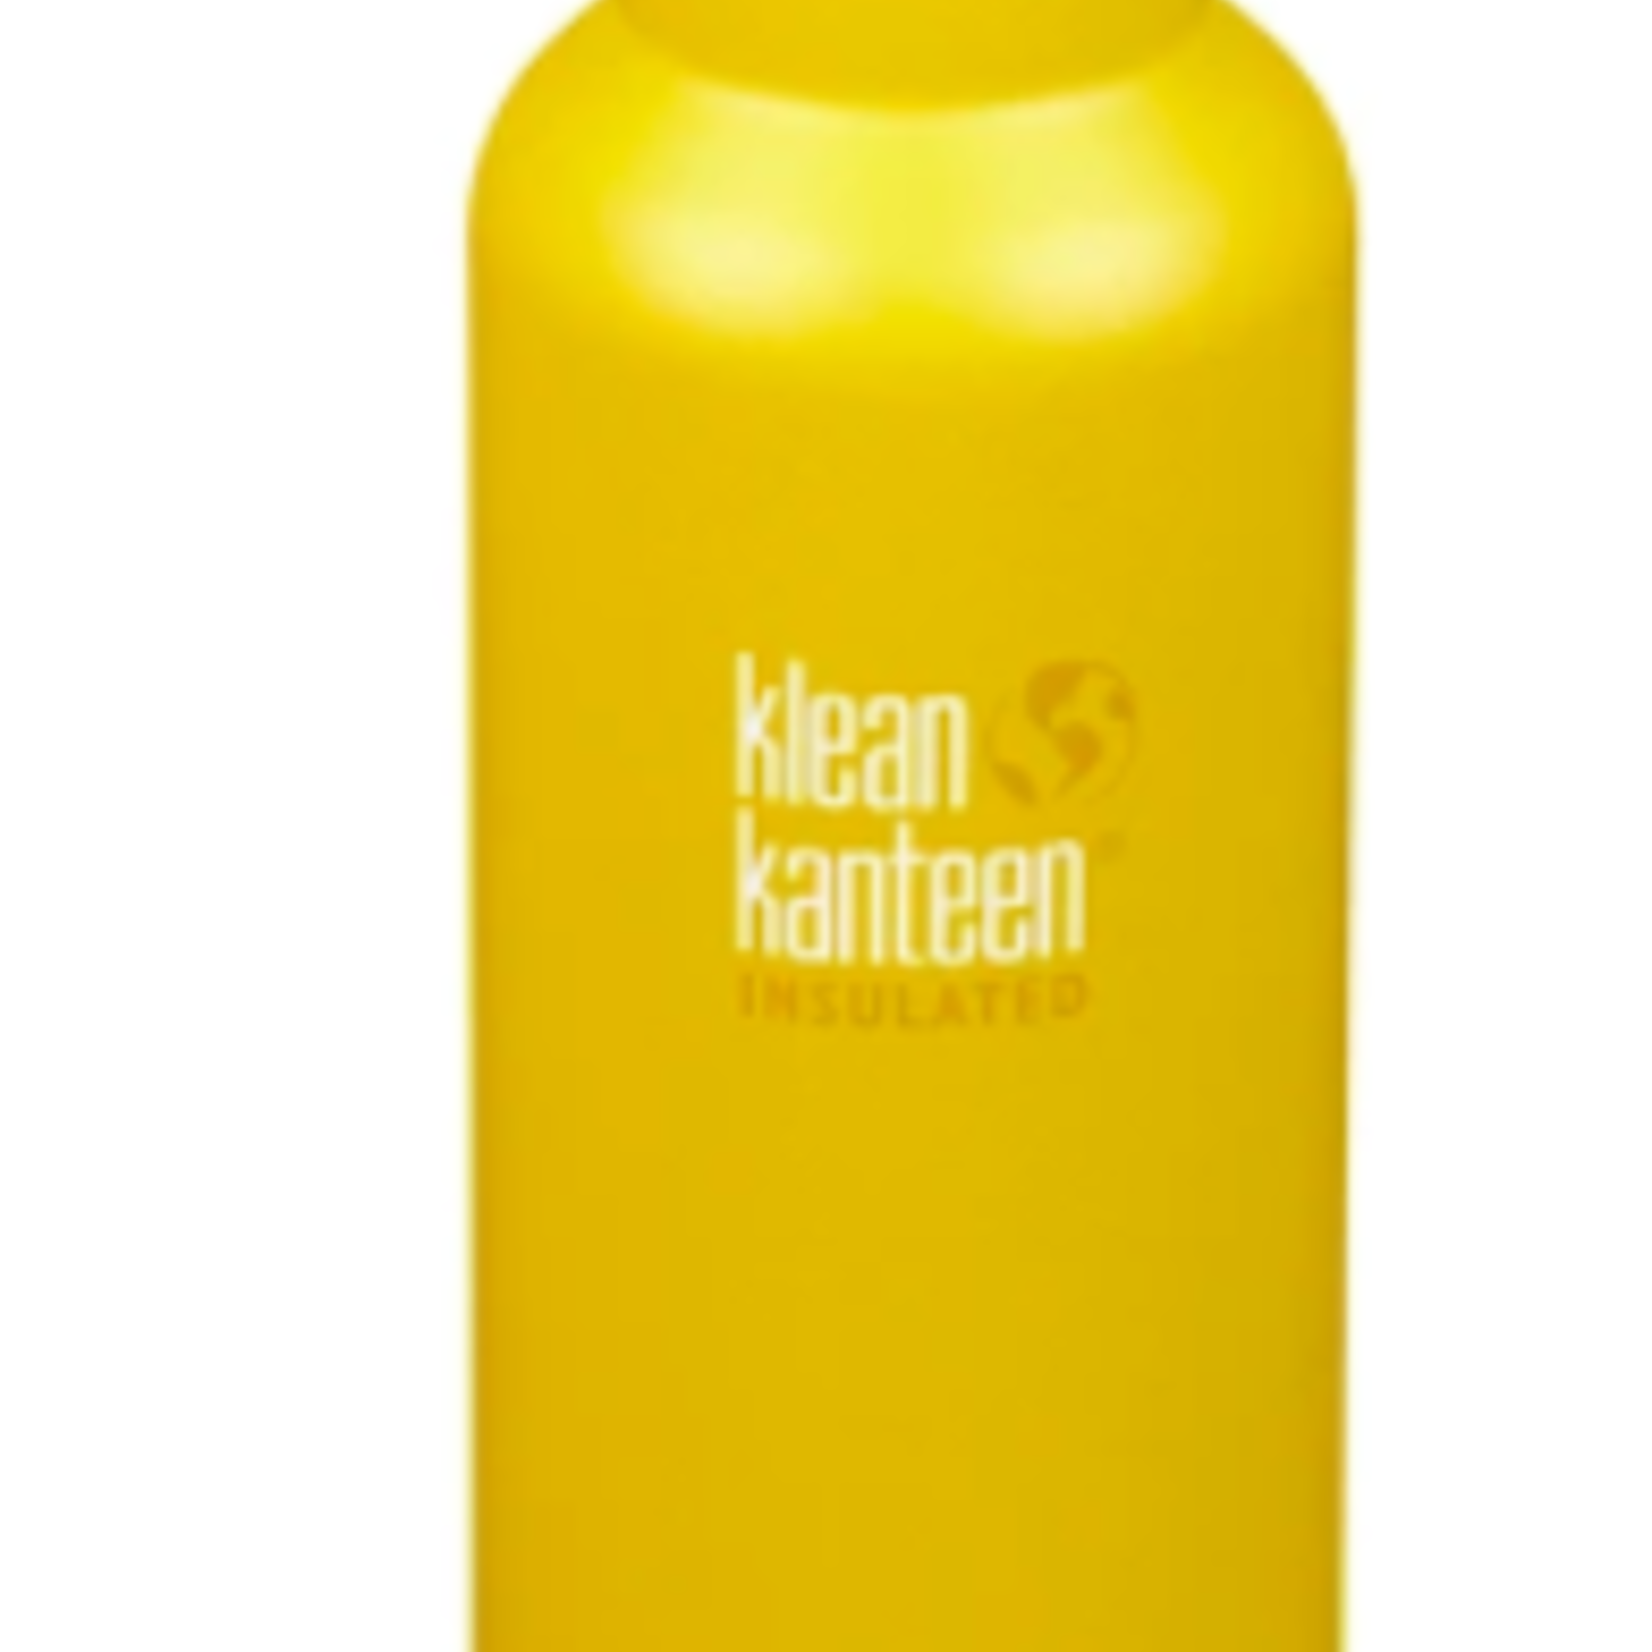 Klean Kanteen 20 oz. Insulated Bottle